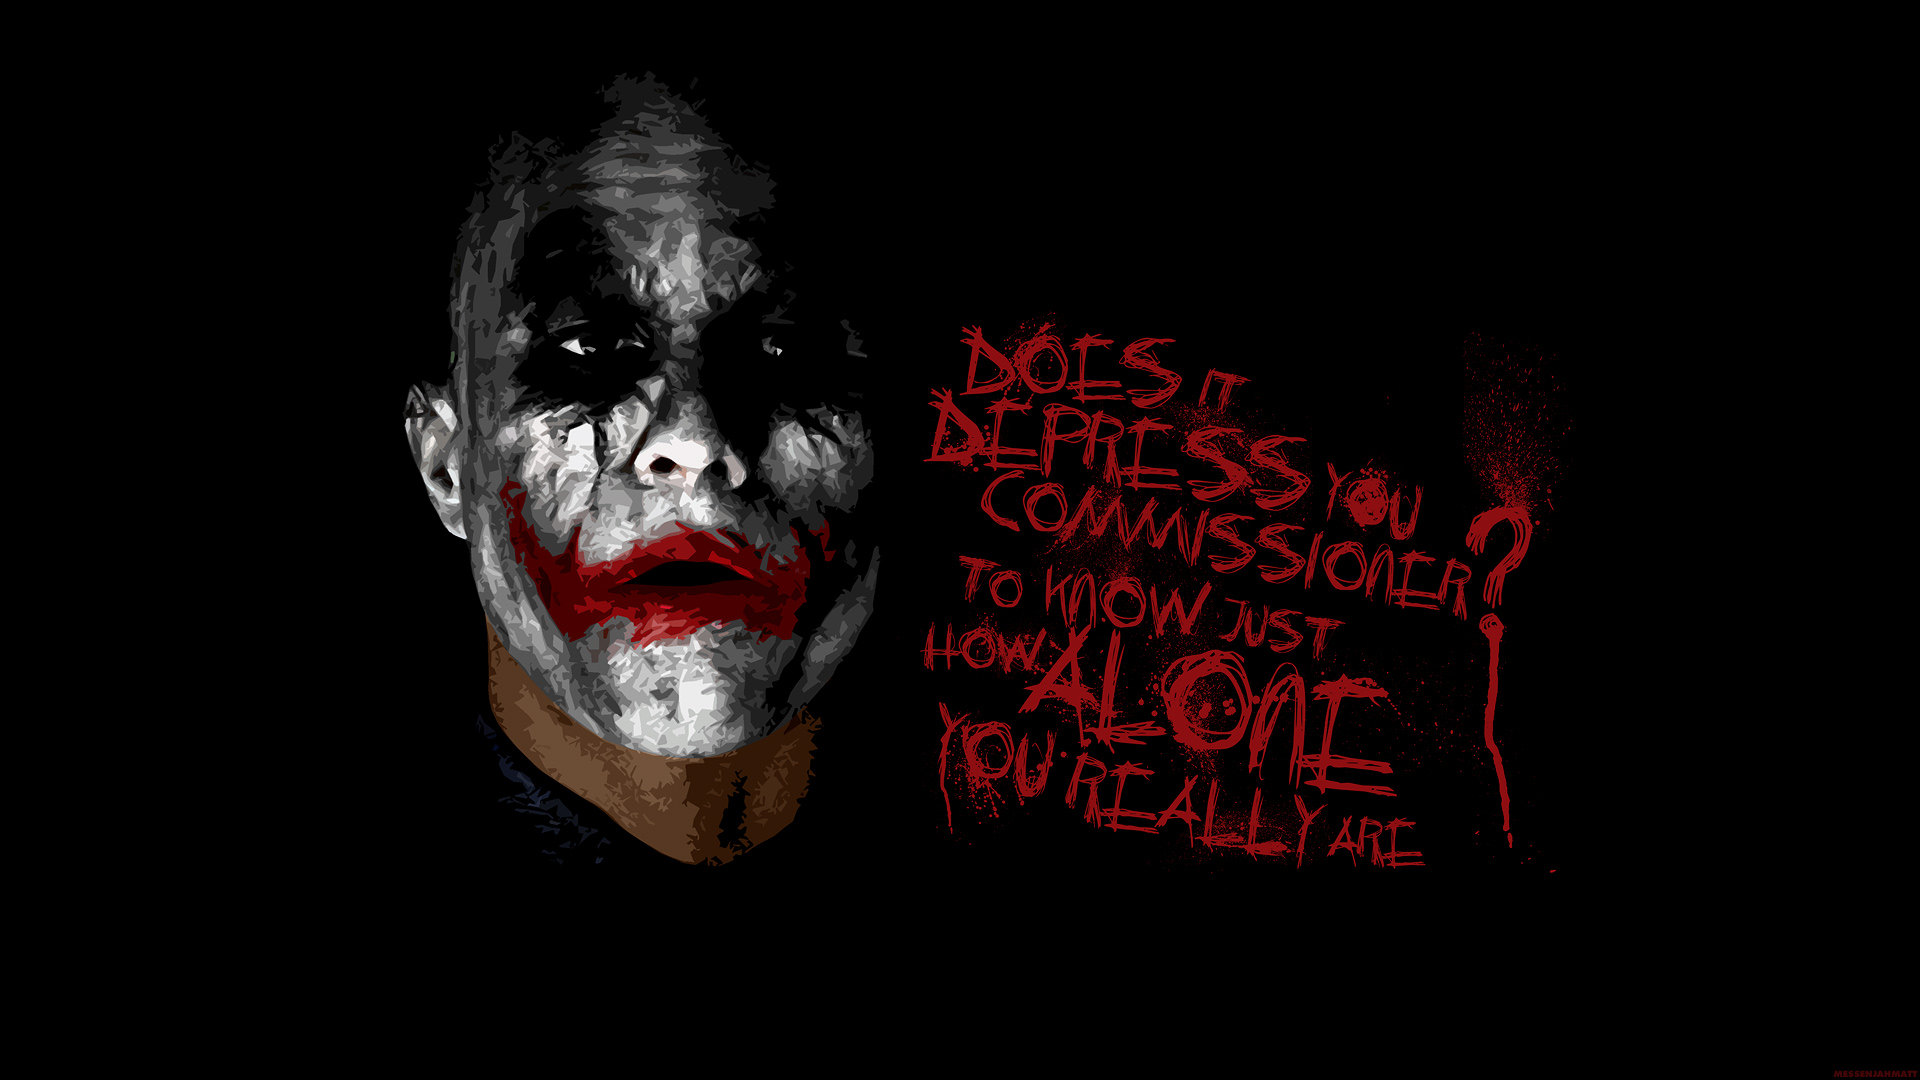 Joker Batman Wallpaper Images amp Pictures   Becuo 1920x1080